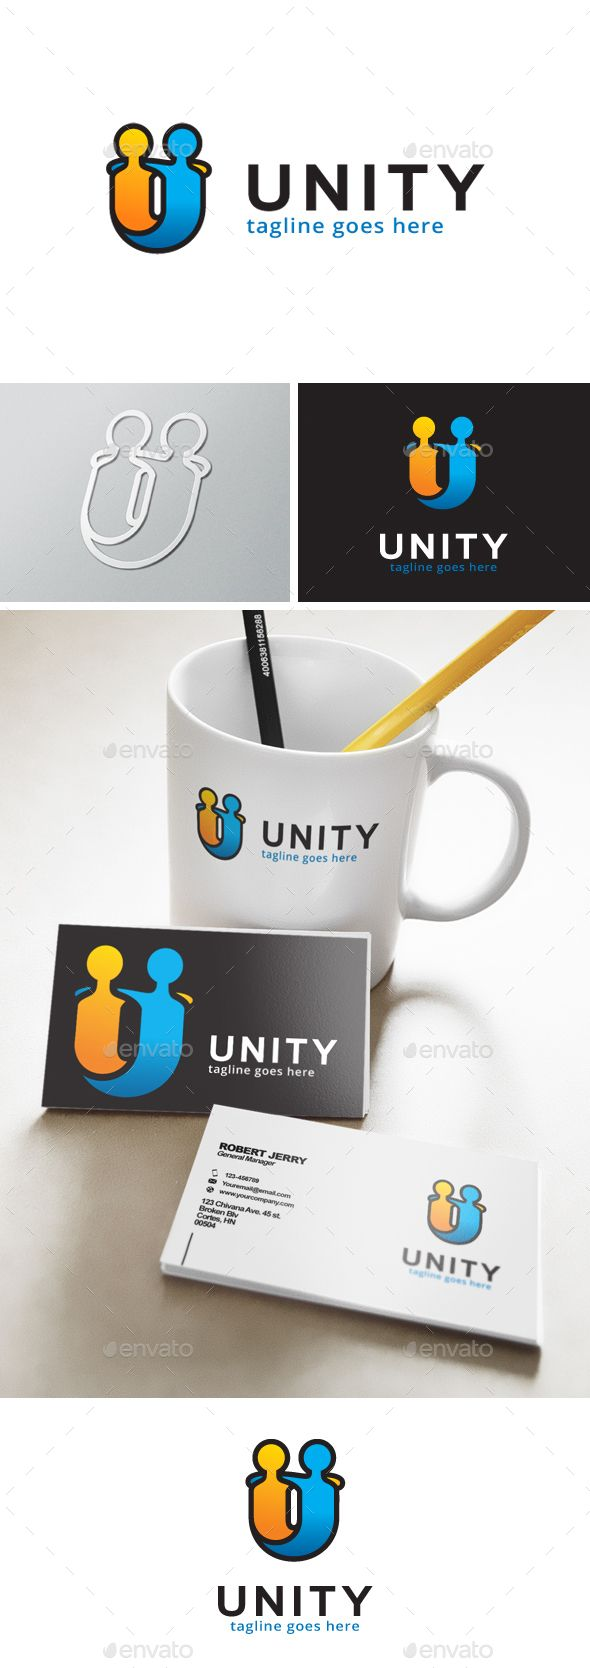 Unity Logo — Transparent PNG #job #logo • Available here → https://graphicriver.net/item/unity-logo/13746759?ref=pxcr